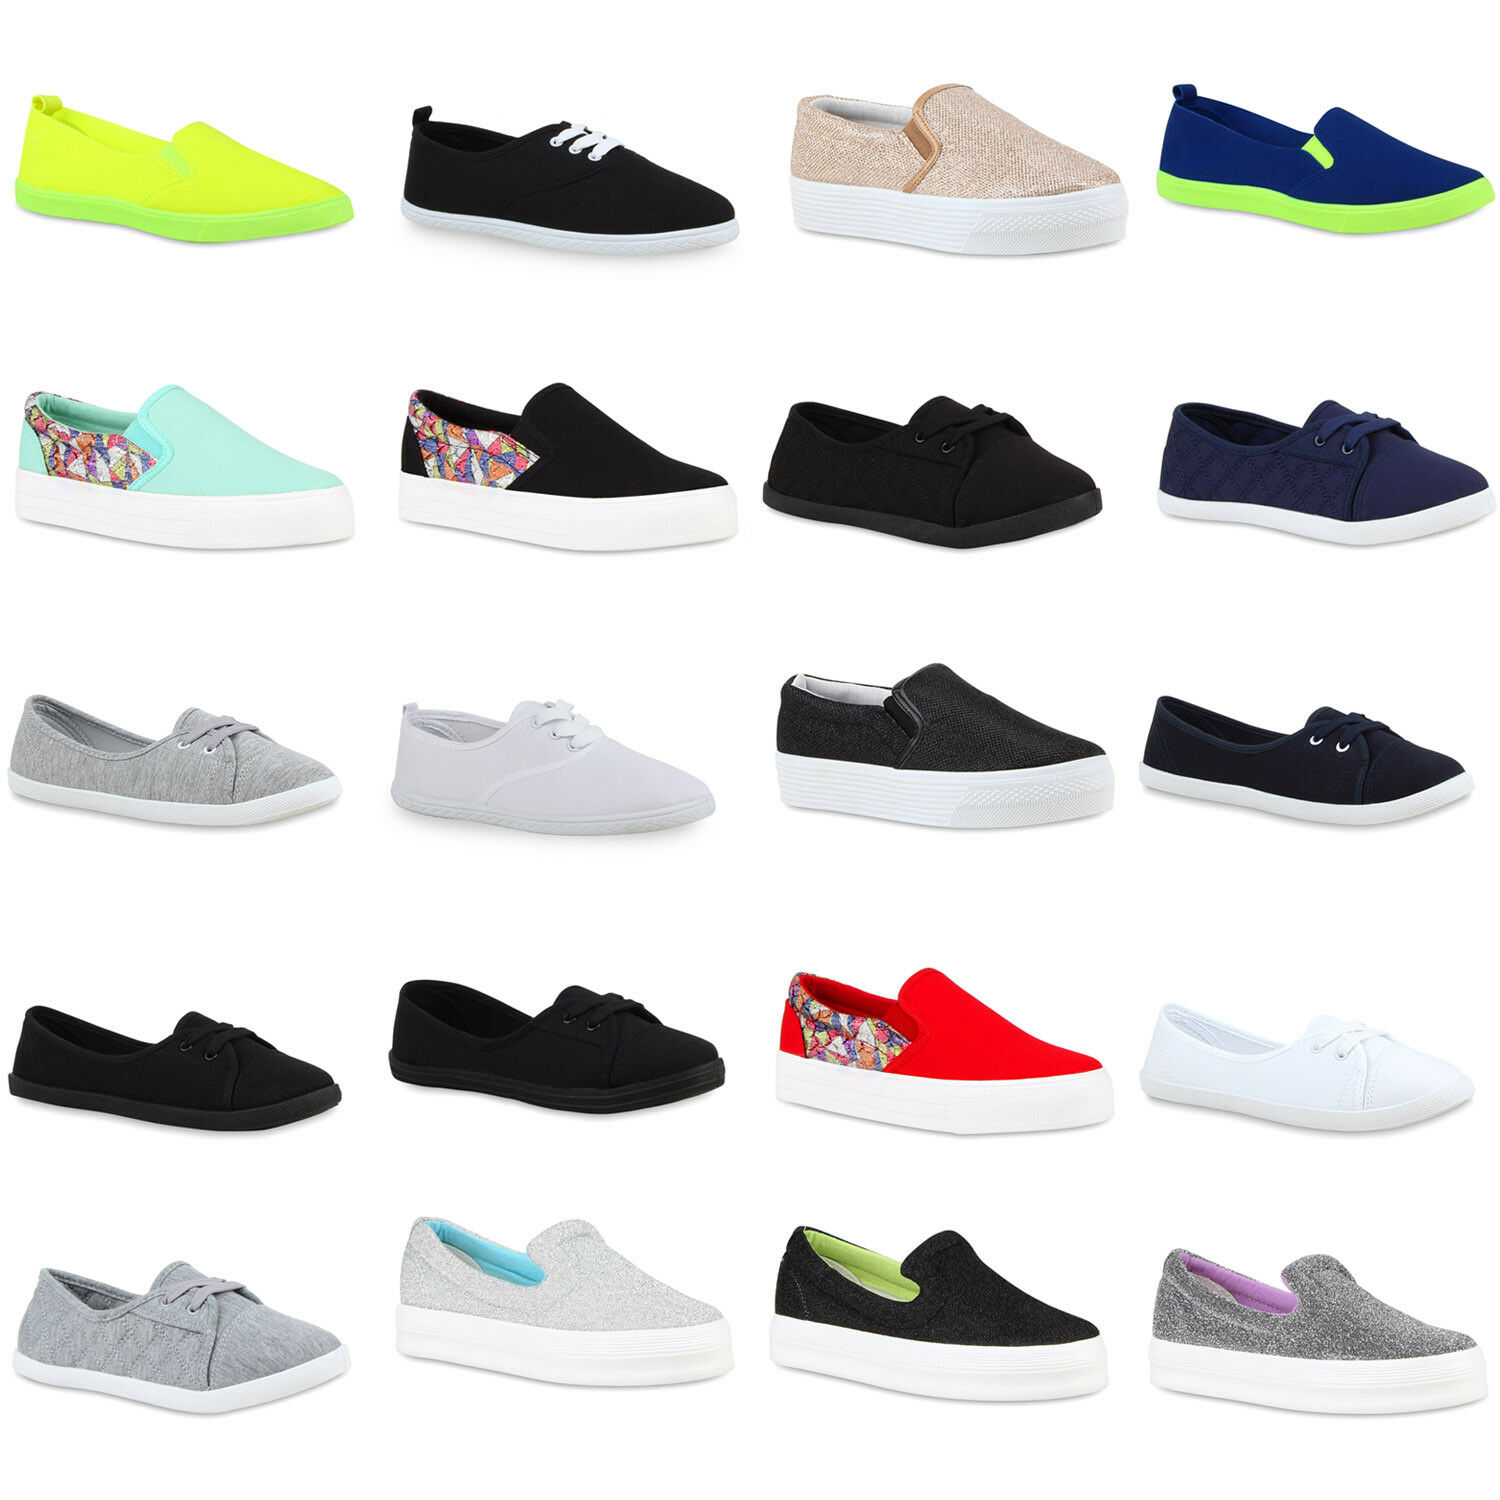 Damen Plateau Sneakers Neon Coole Slipper Ethno  zapatos zapatos zapatos  890975 Top 5adfd2